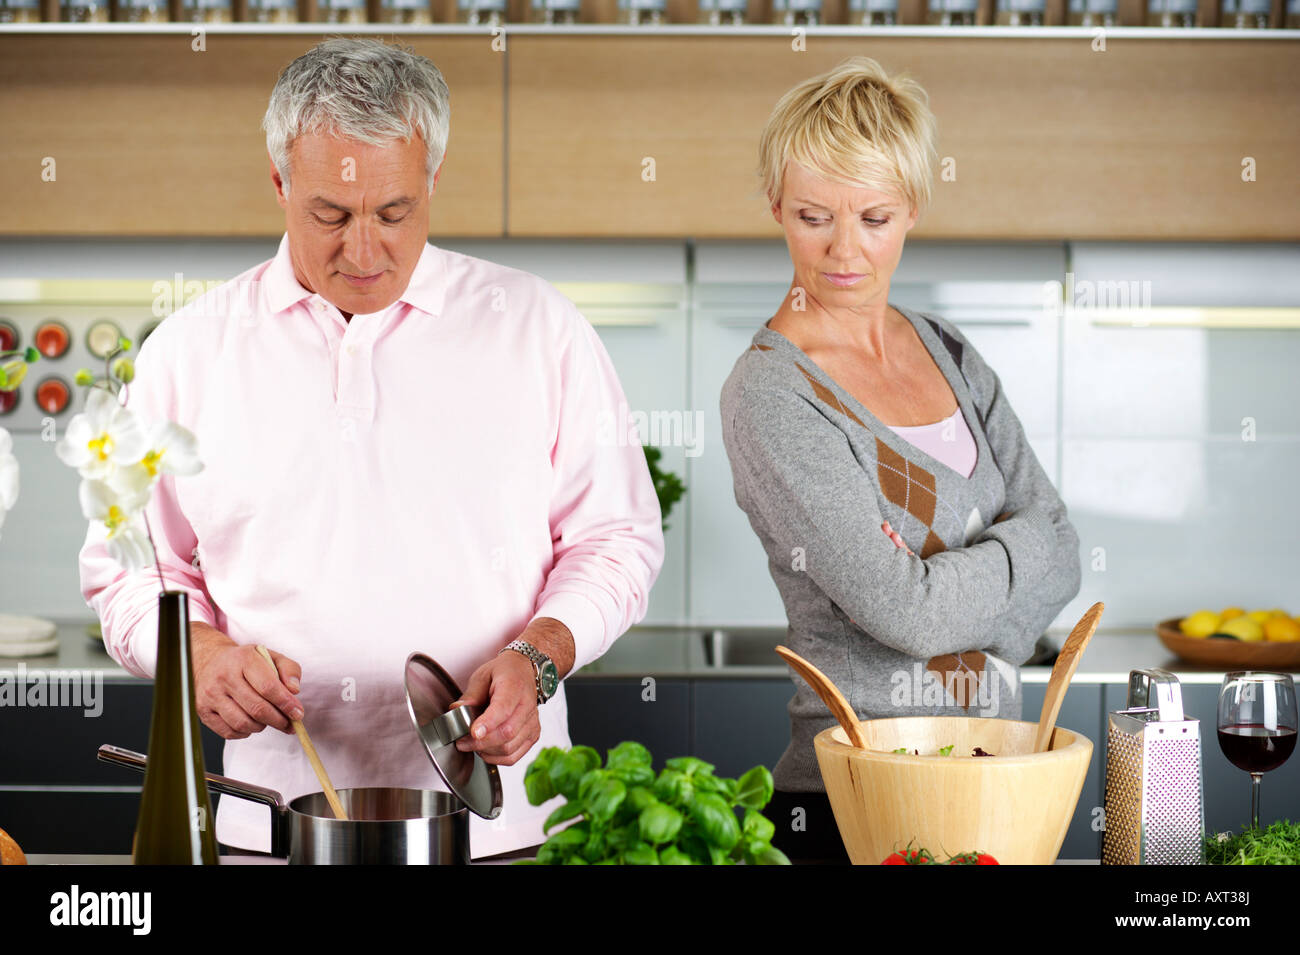 Blond woman turned away from a man who is cooking Stock Photo